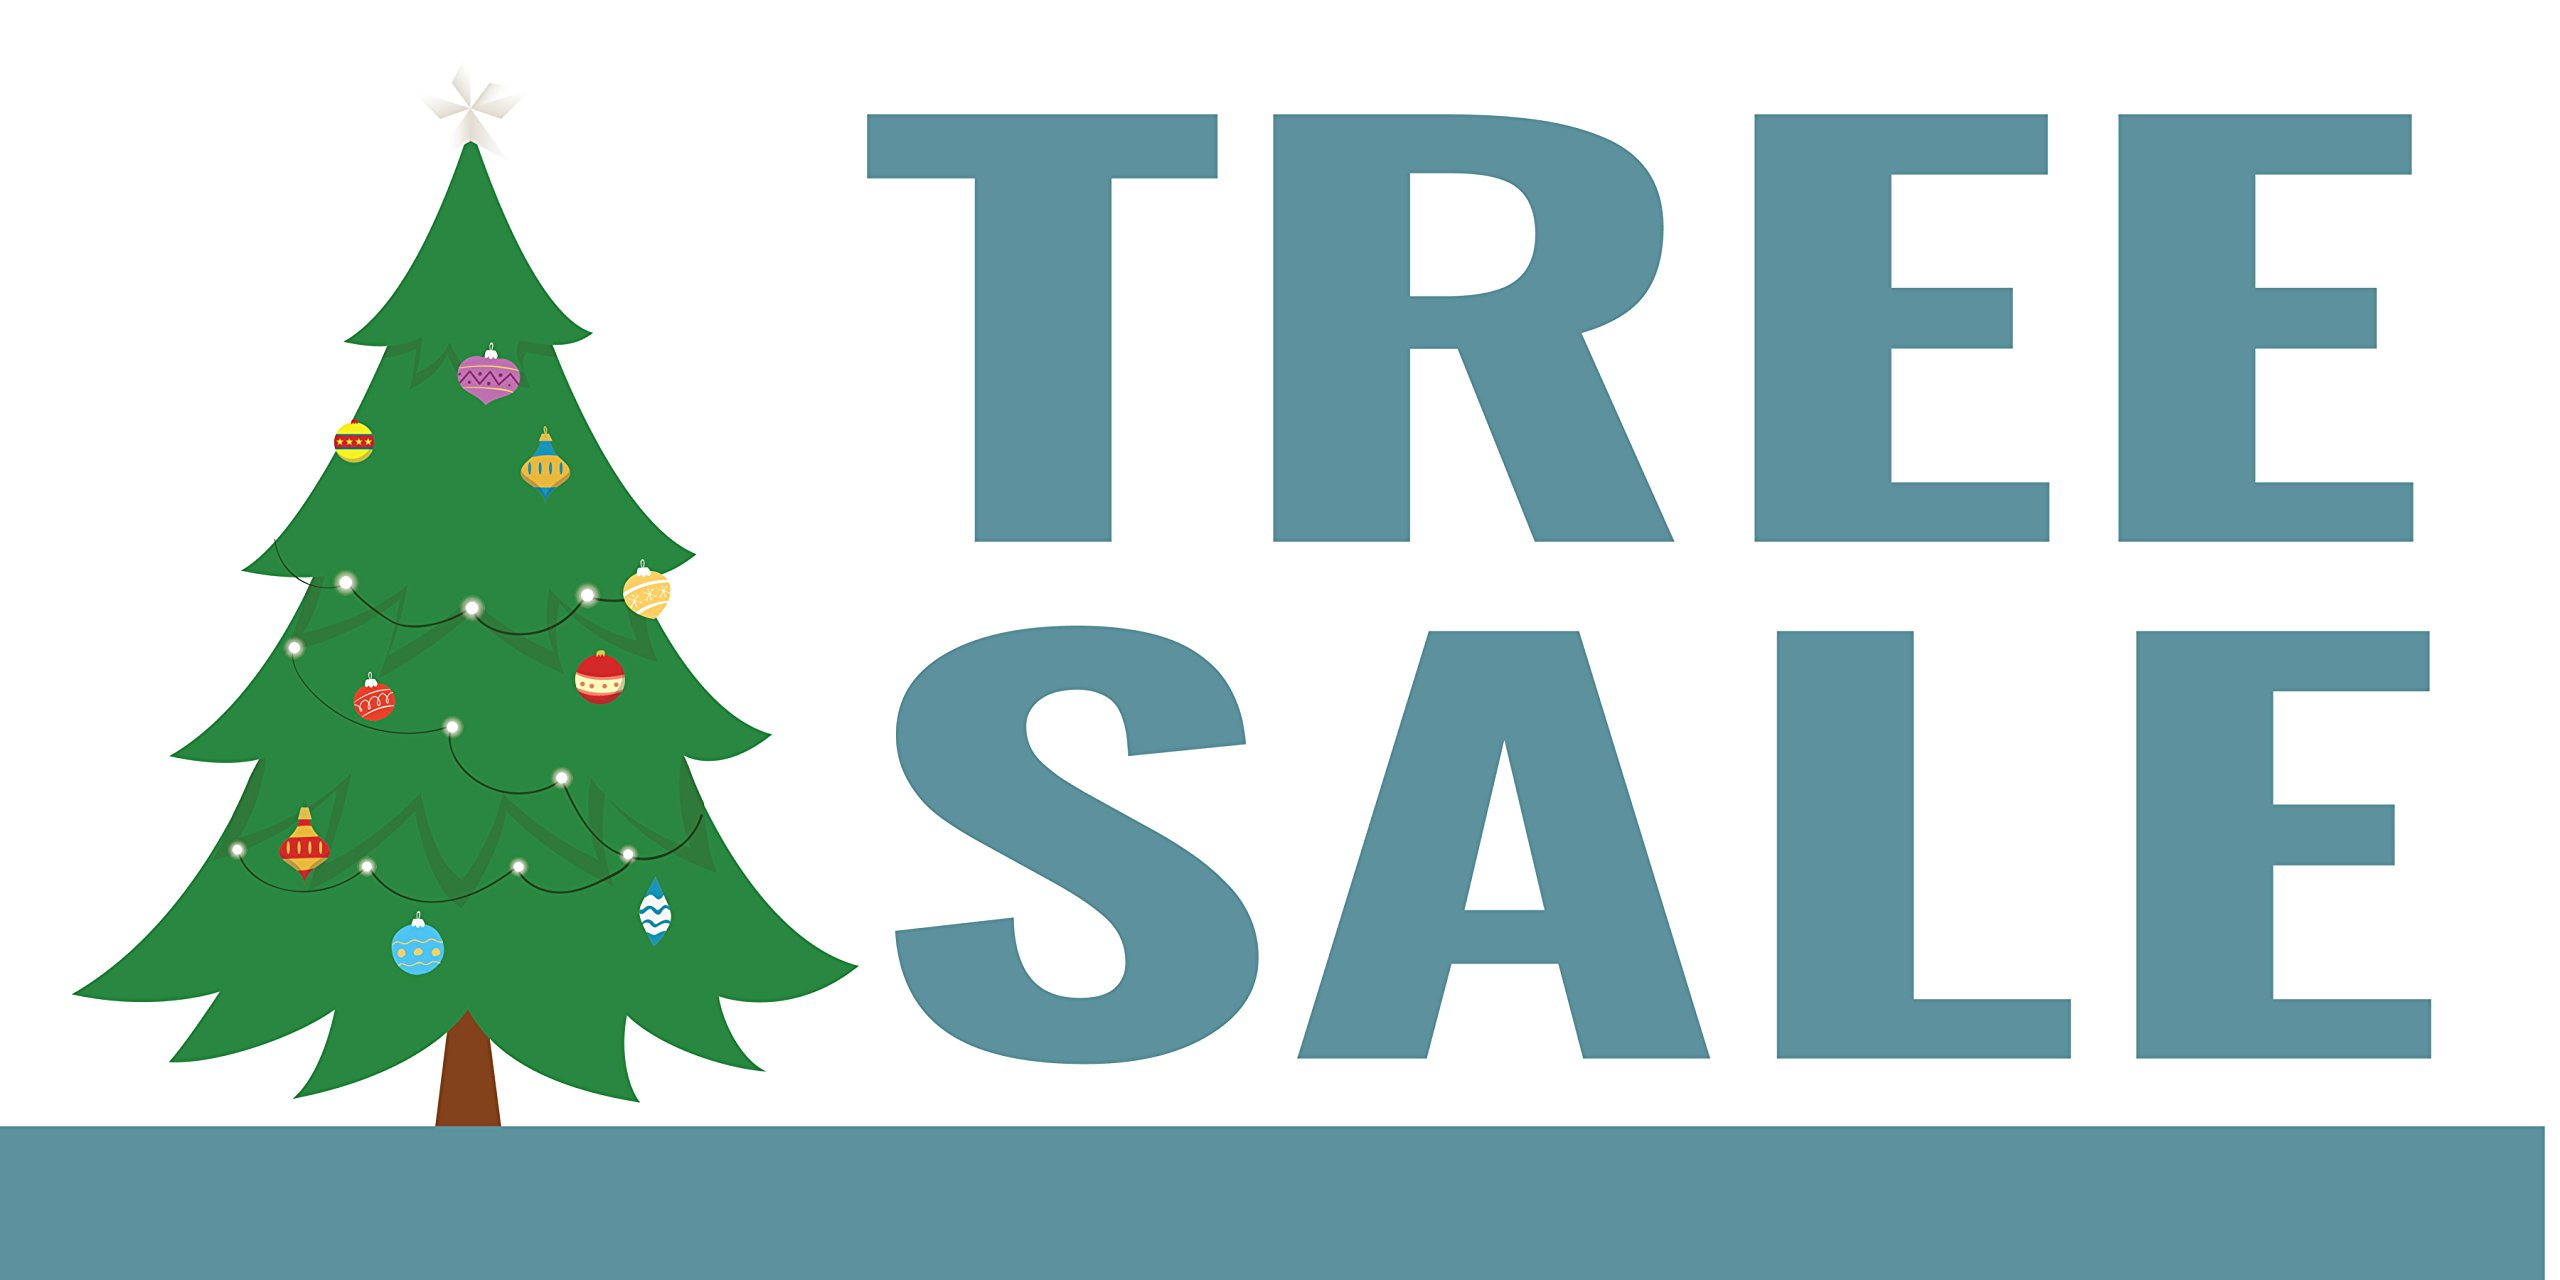 Pre-Printed Tree Sale Banner Christmas - Light Green (10' x 5') by Reliable Banner Sign Supply & Printing